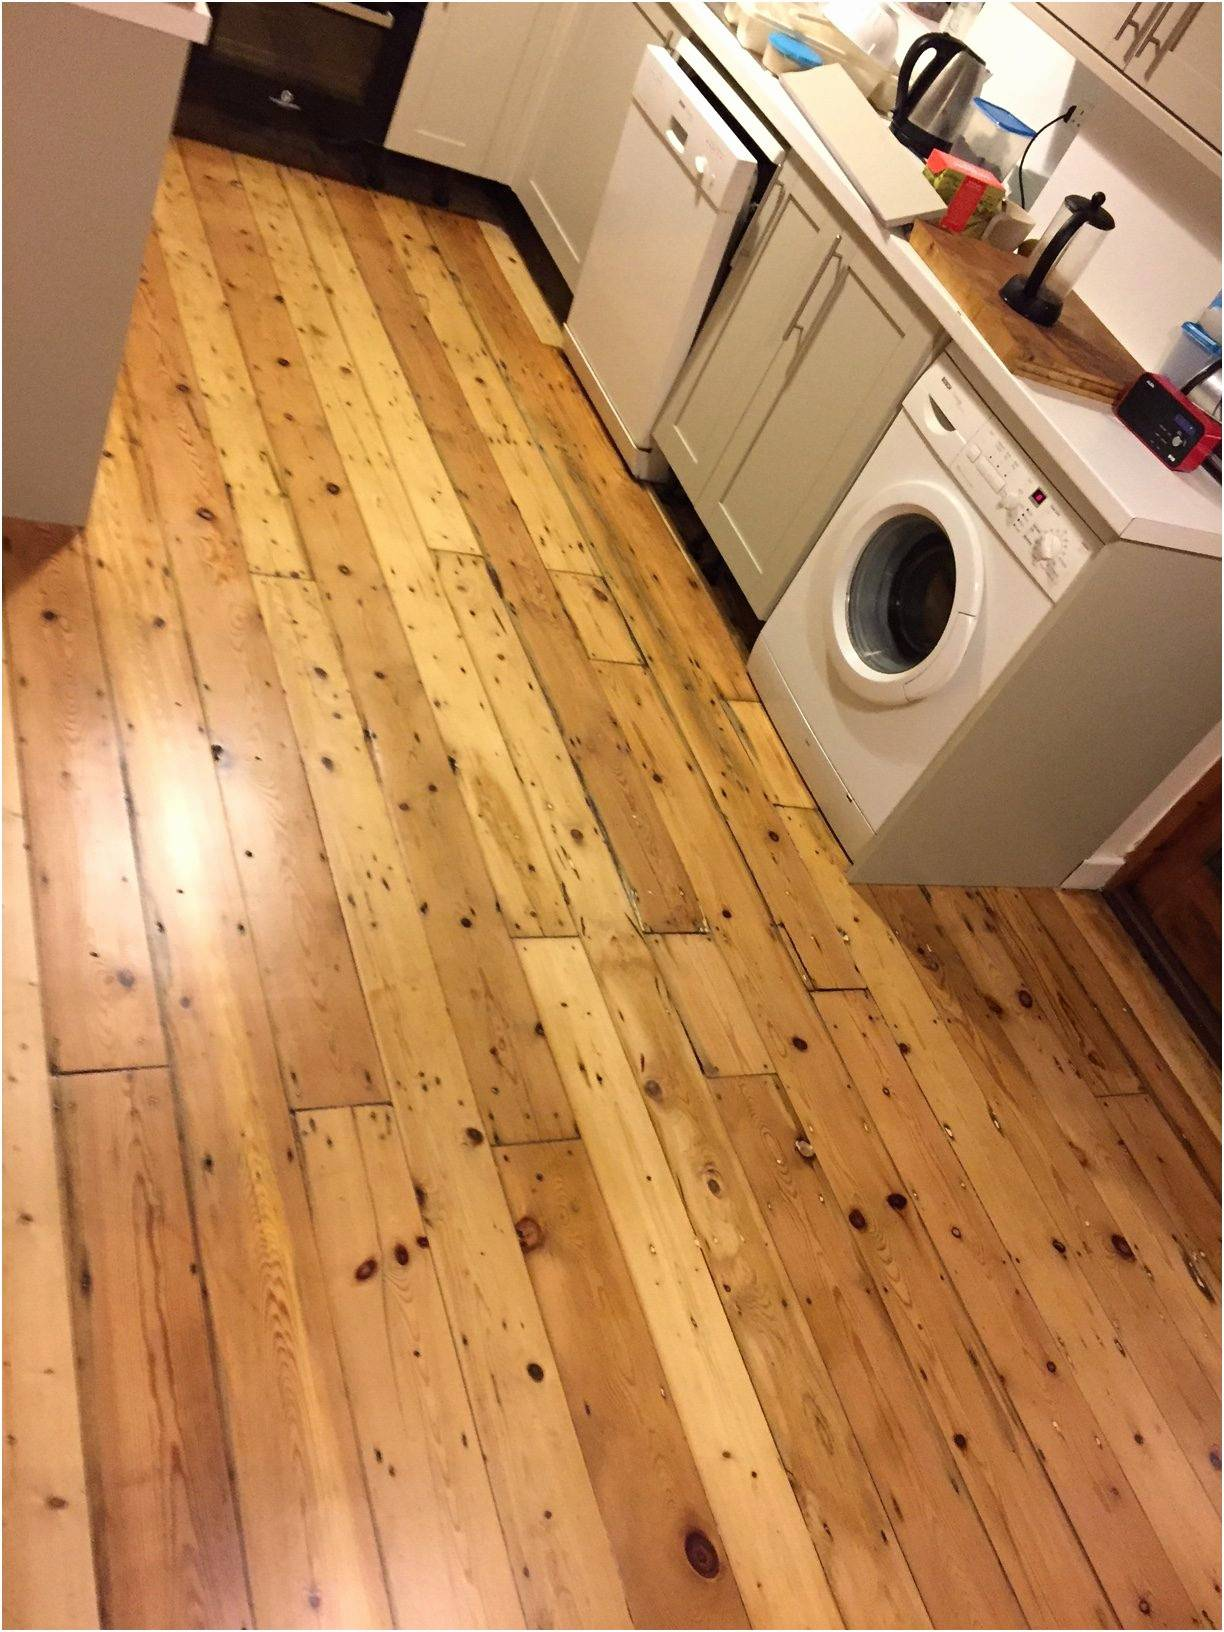 laminate or hardwood flooring of flooring nj elegant floor 40 luxury floor installation sets re with flooring nj luxury what is laminate wood flooring fresh 0d grace place barnegat nj